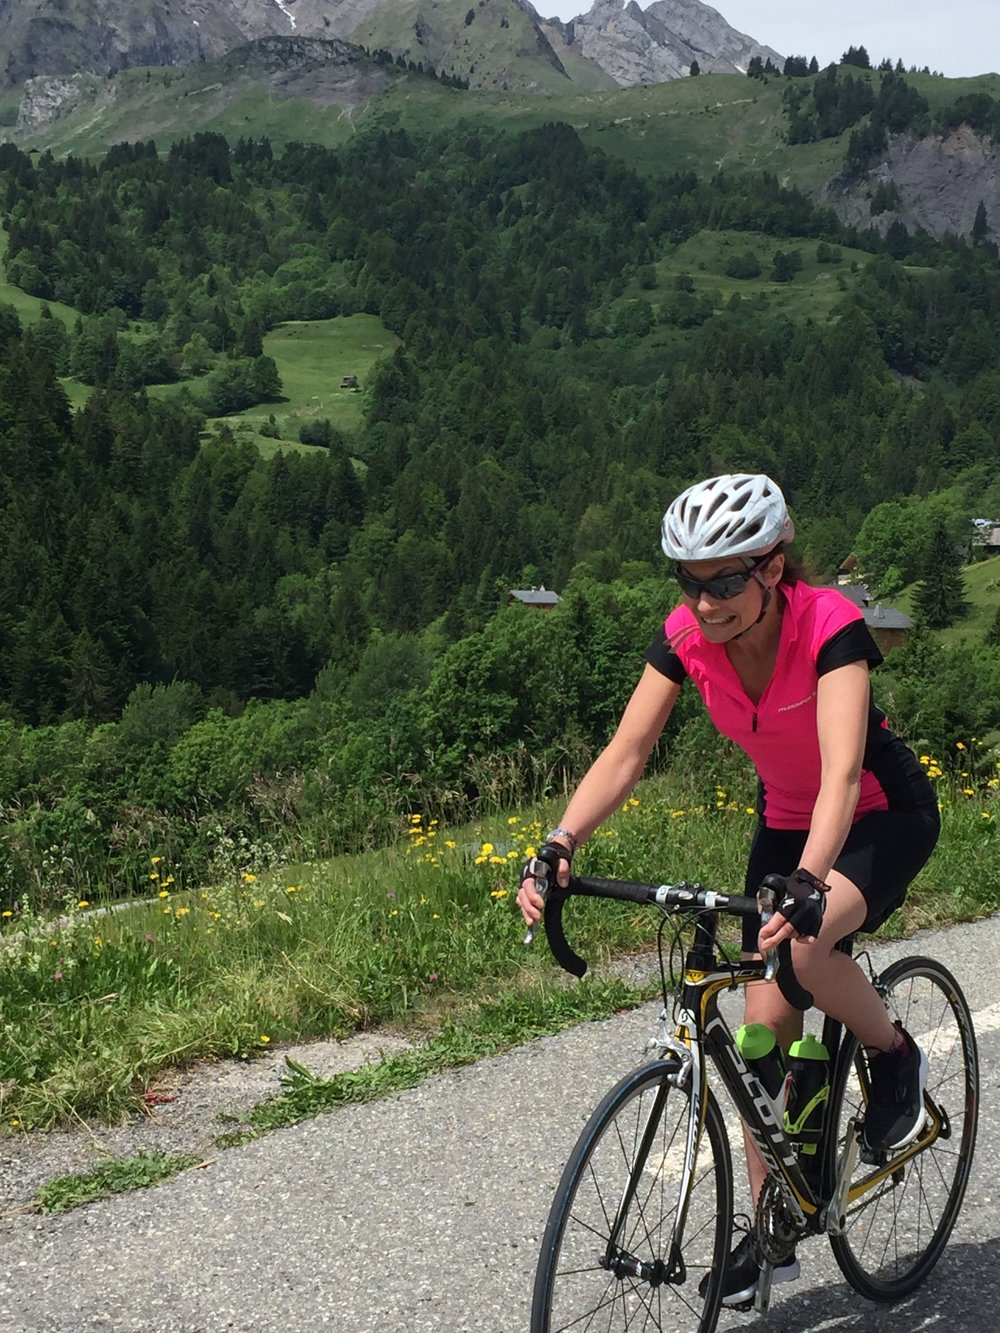 Gemma getting used to the descents!